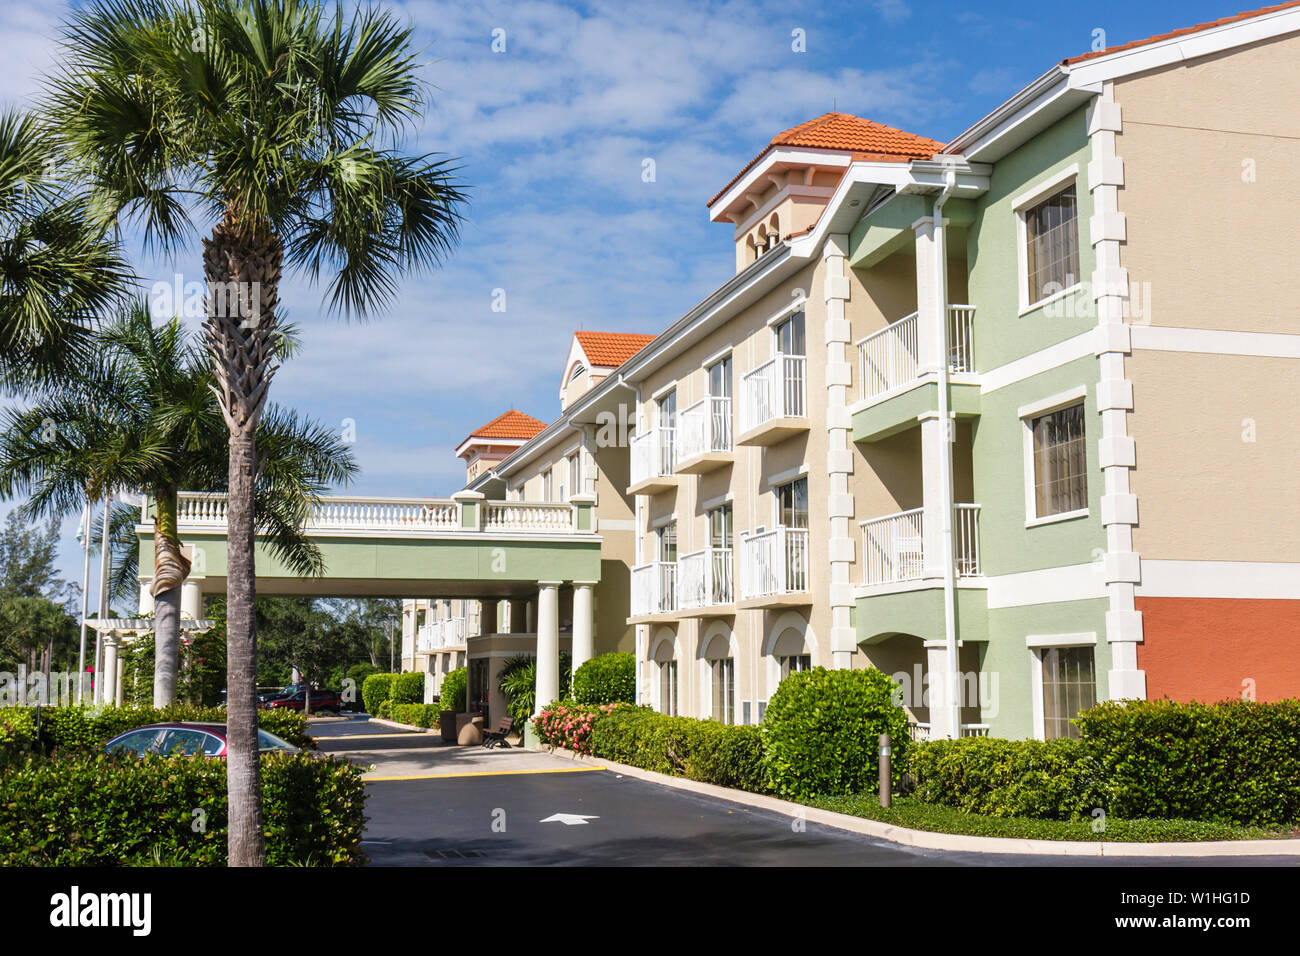 Naples Florida Hilton DoubleTree Guest Suites chain business hotel motel lodging three-story building exterior balcony entrance - Stock Image